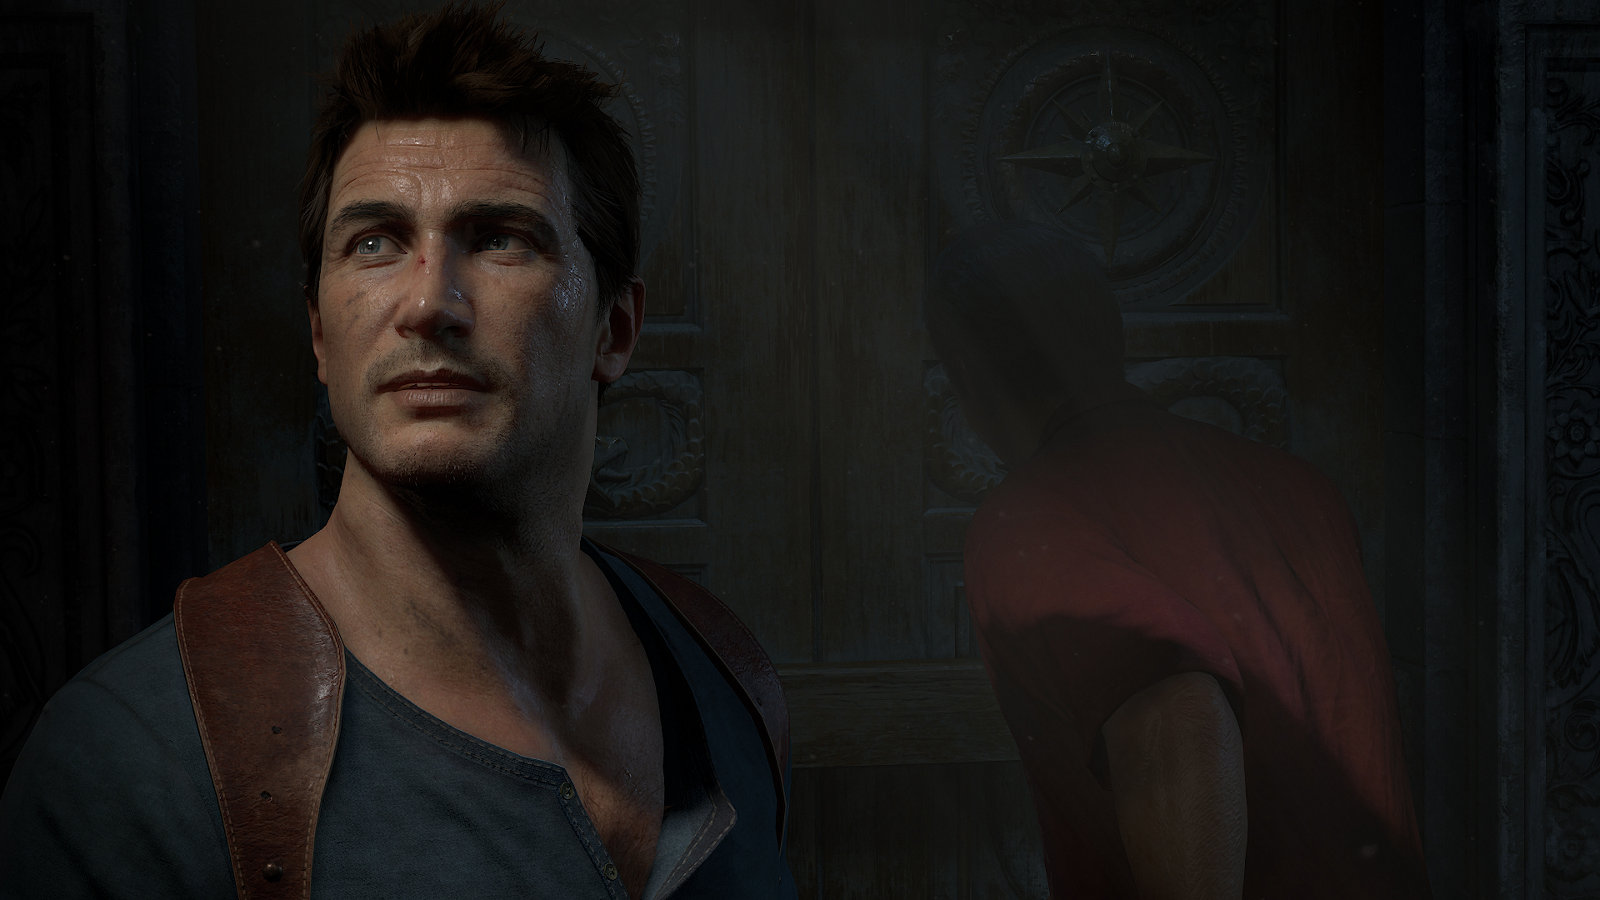 https://media.playstation.com/is/image/SCEA/uncharted-4-screenshot-19-15jun15?$BackgroundFeature_Large$